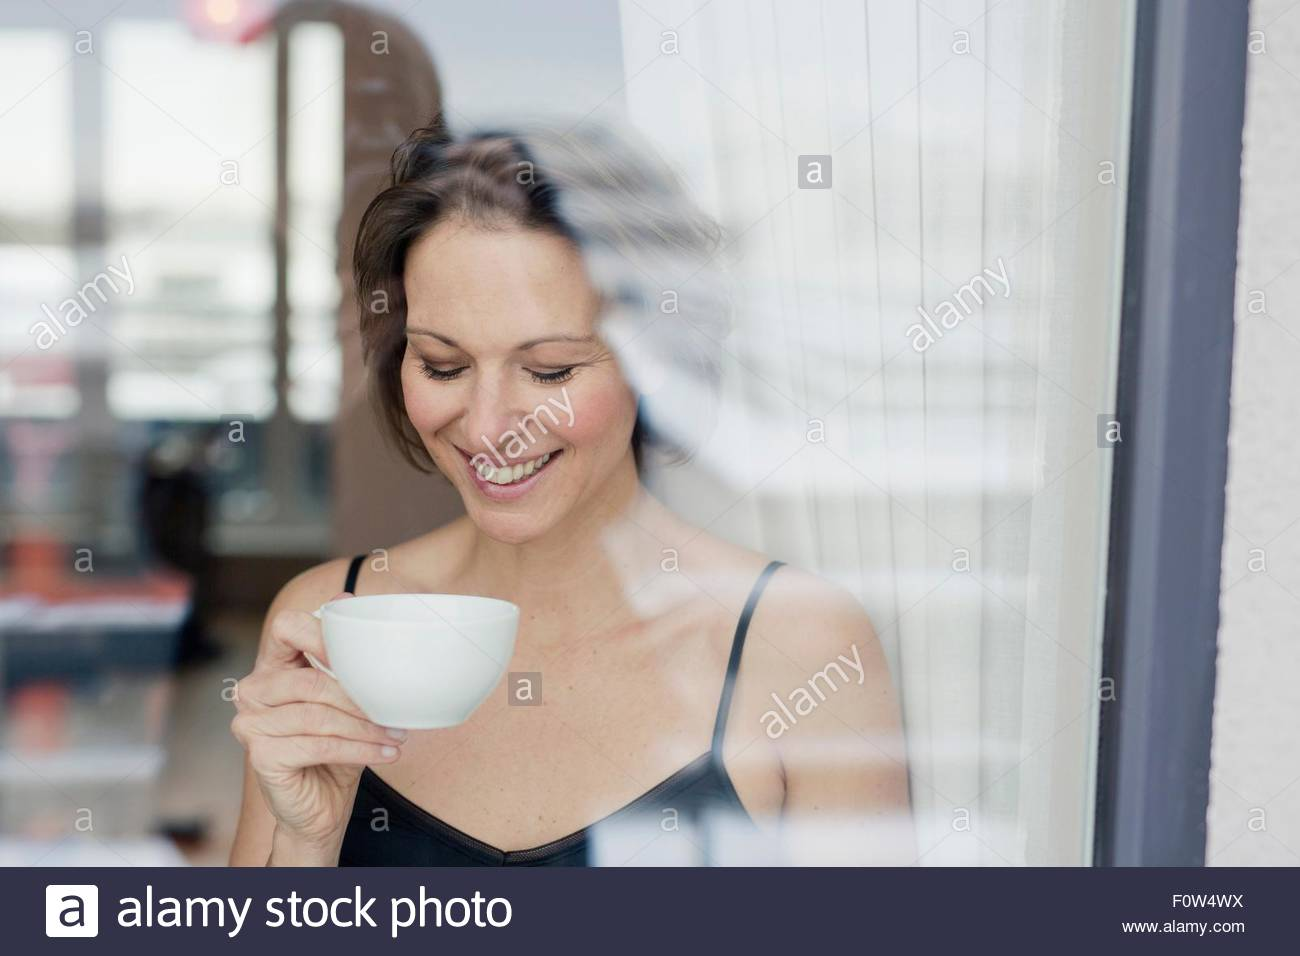 negligee stock photos & negligee stock images - alamy